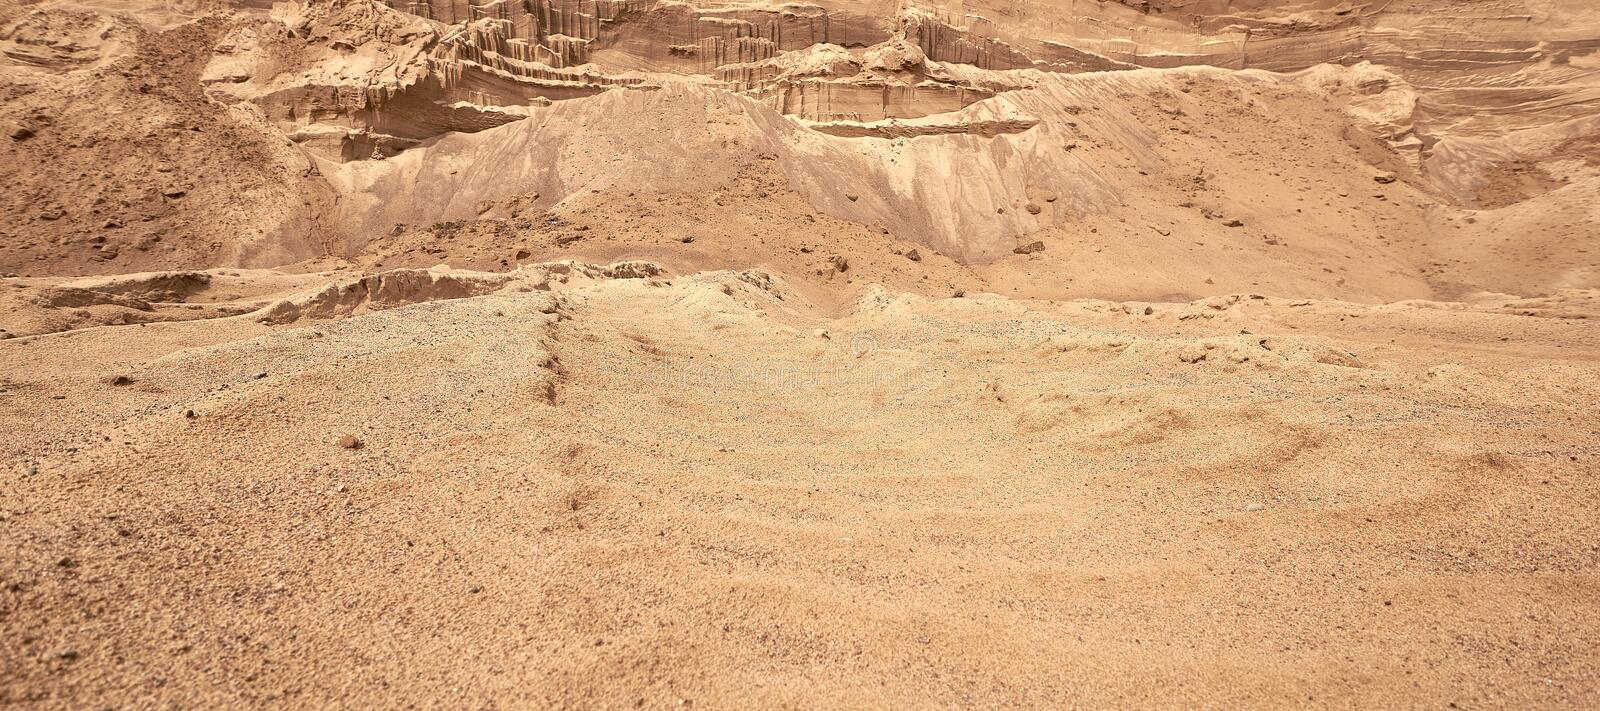 Industrial sand quarry. The development of the sand pit. Construction industry. royalty free stock photography